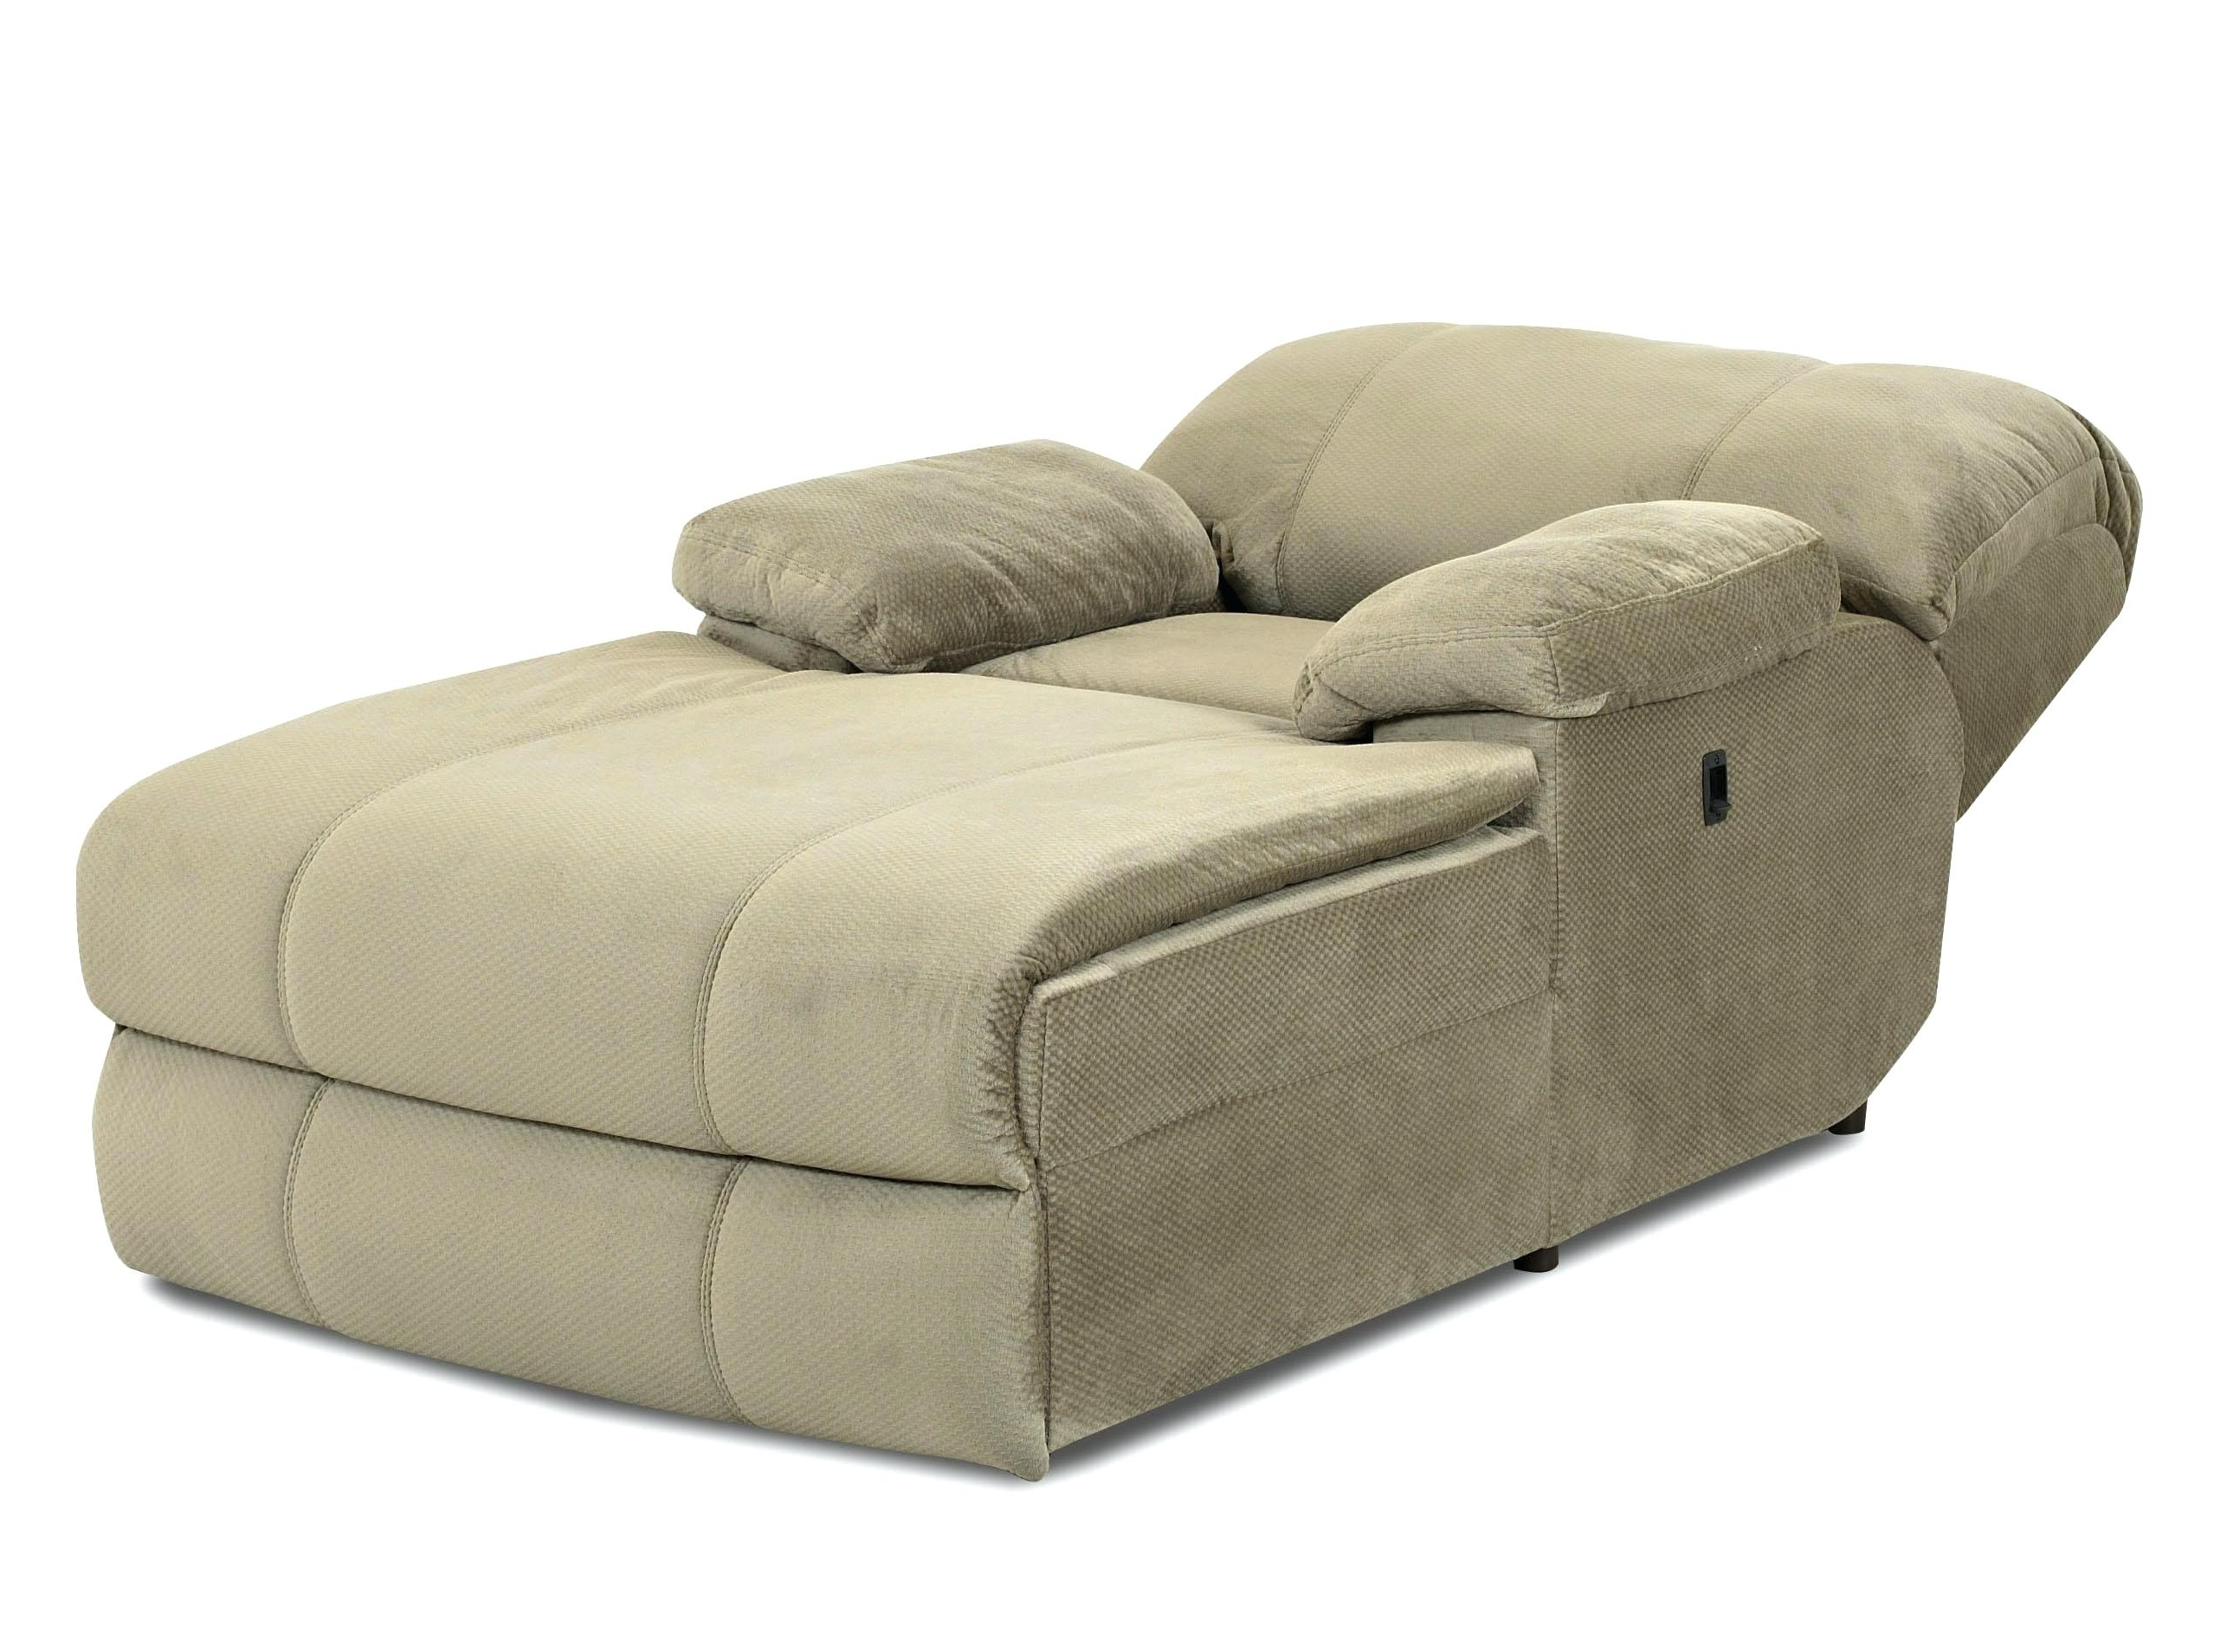 Favorite Chaise Lounge Chair With Arms Indoor • Lounge Chairs Ideas Pertaining To Chaise Lounge Chairs With Arms Slipcover (View 15 of 15)